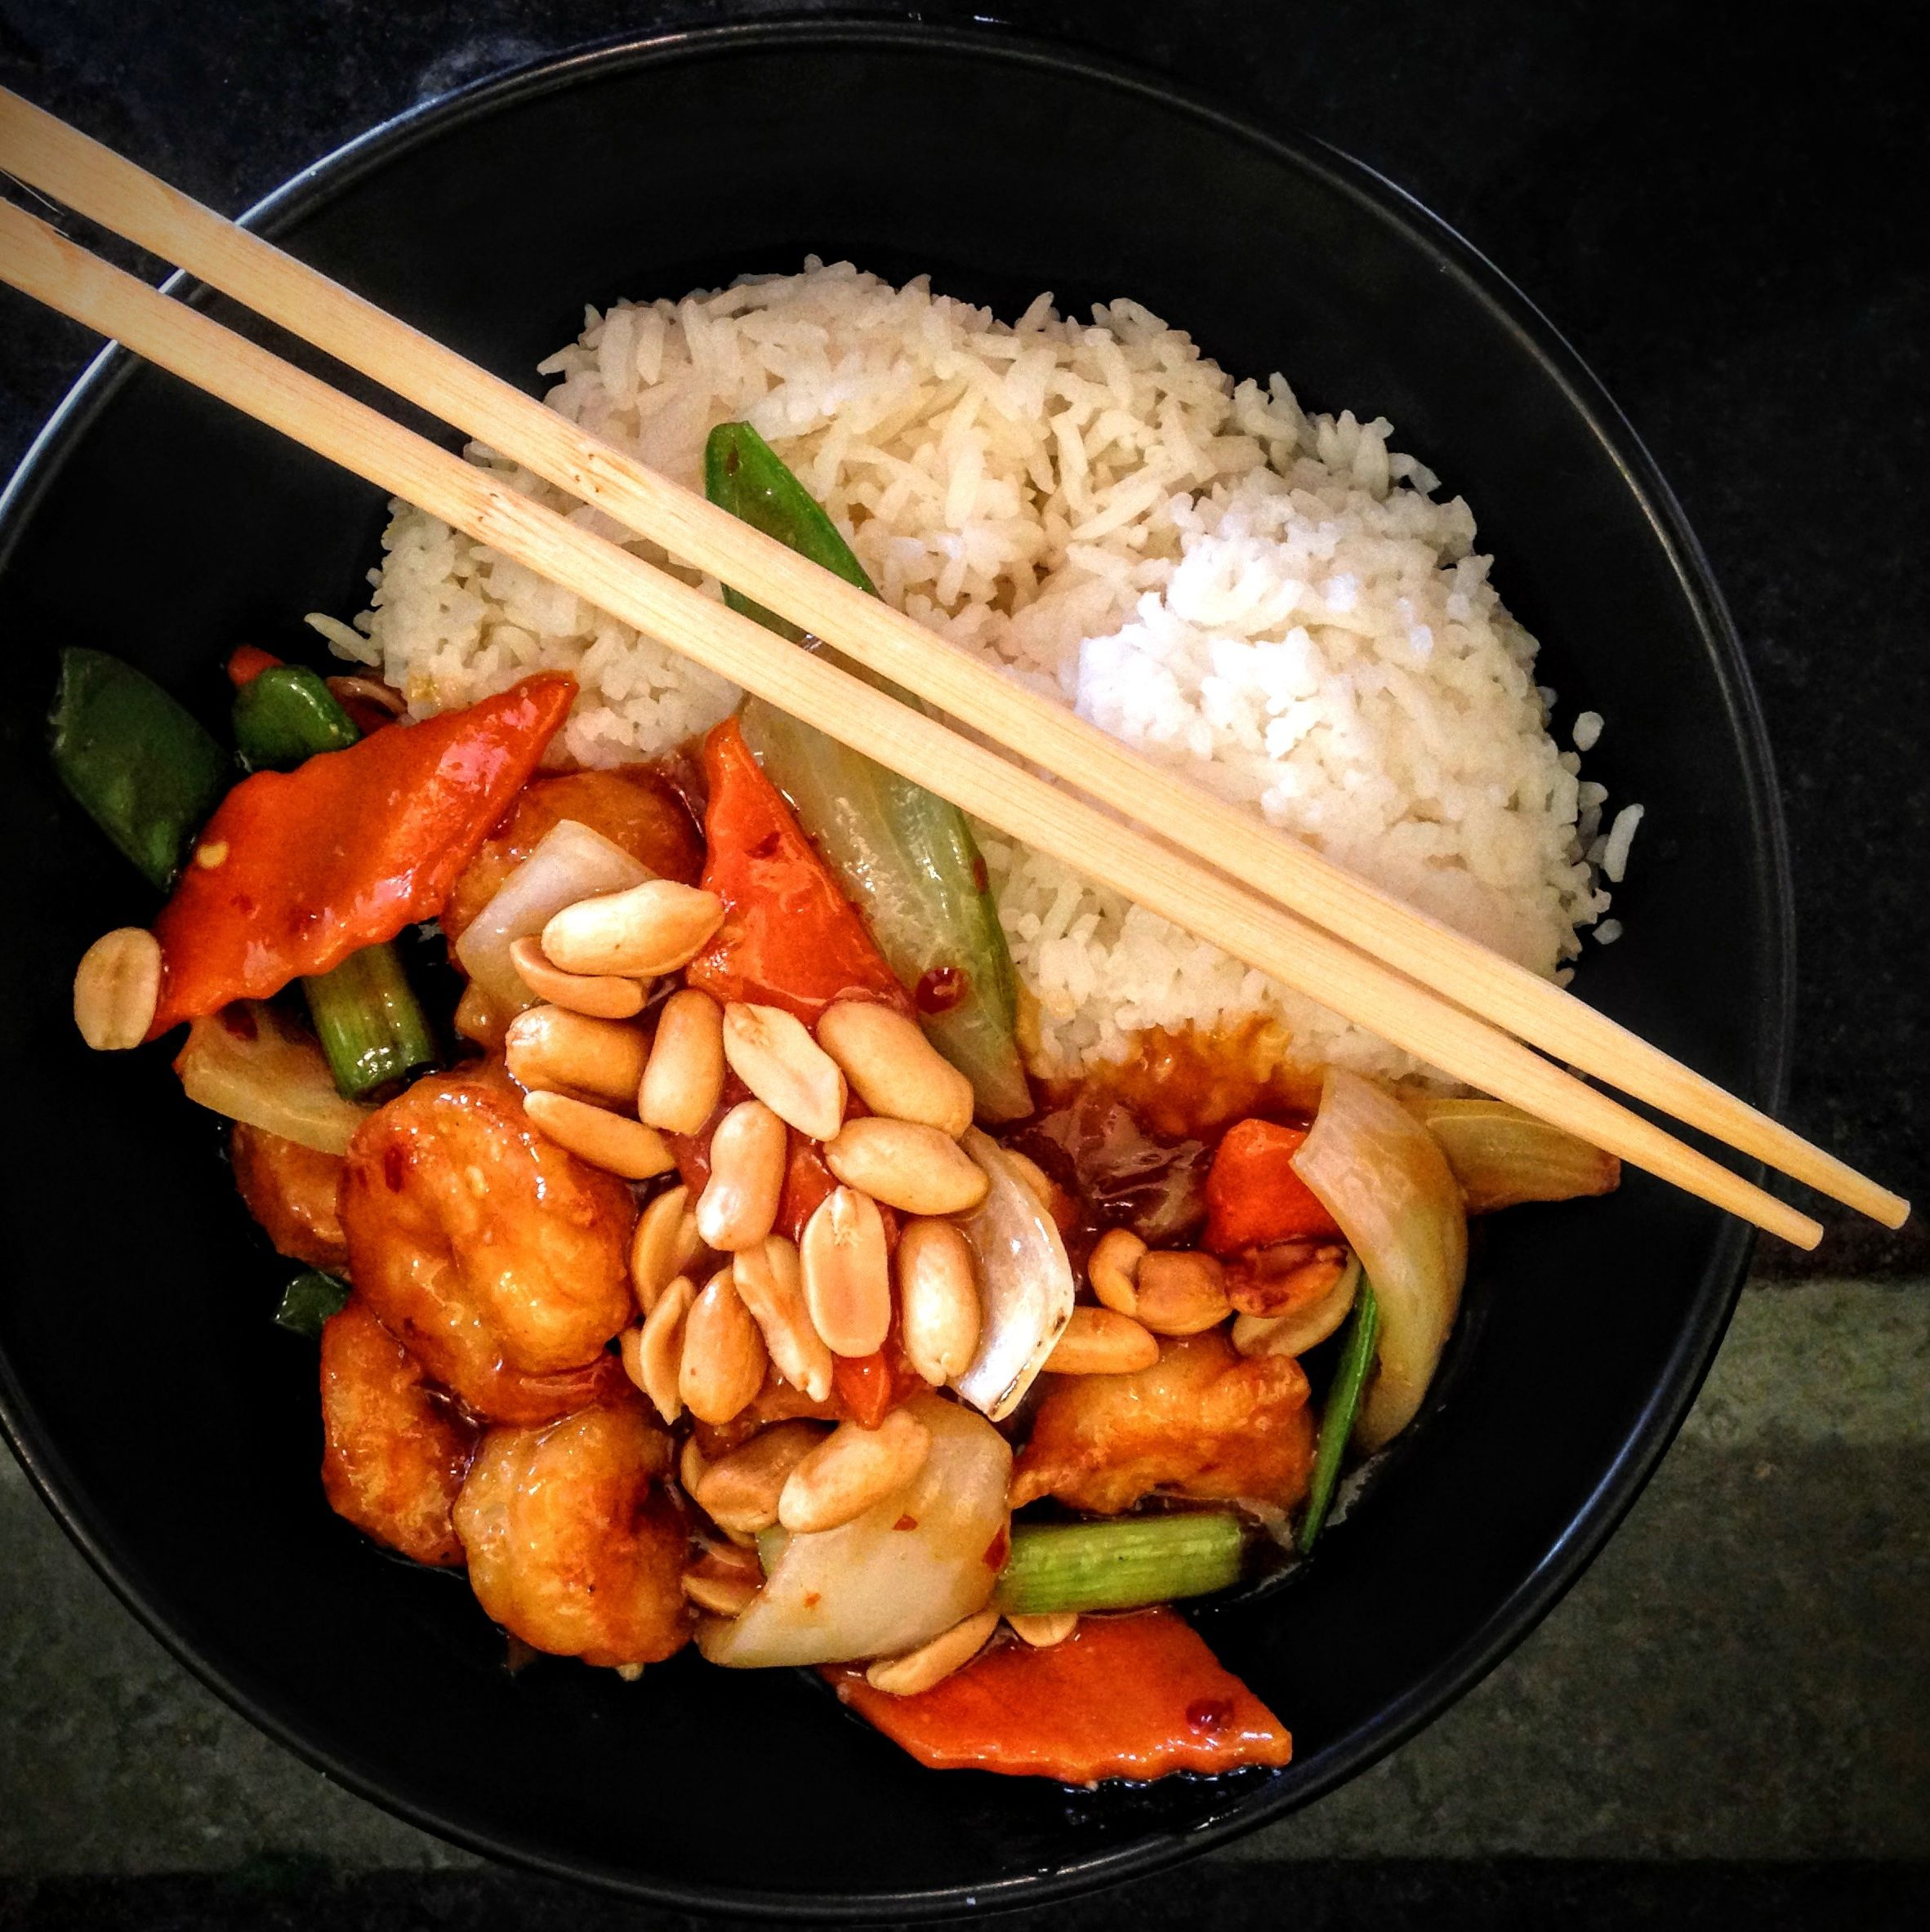 Rice bowl asian house imkpz4